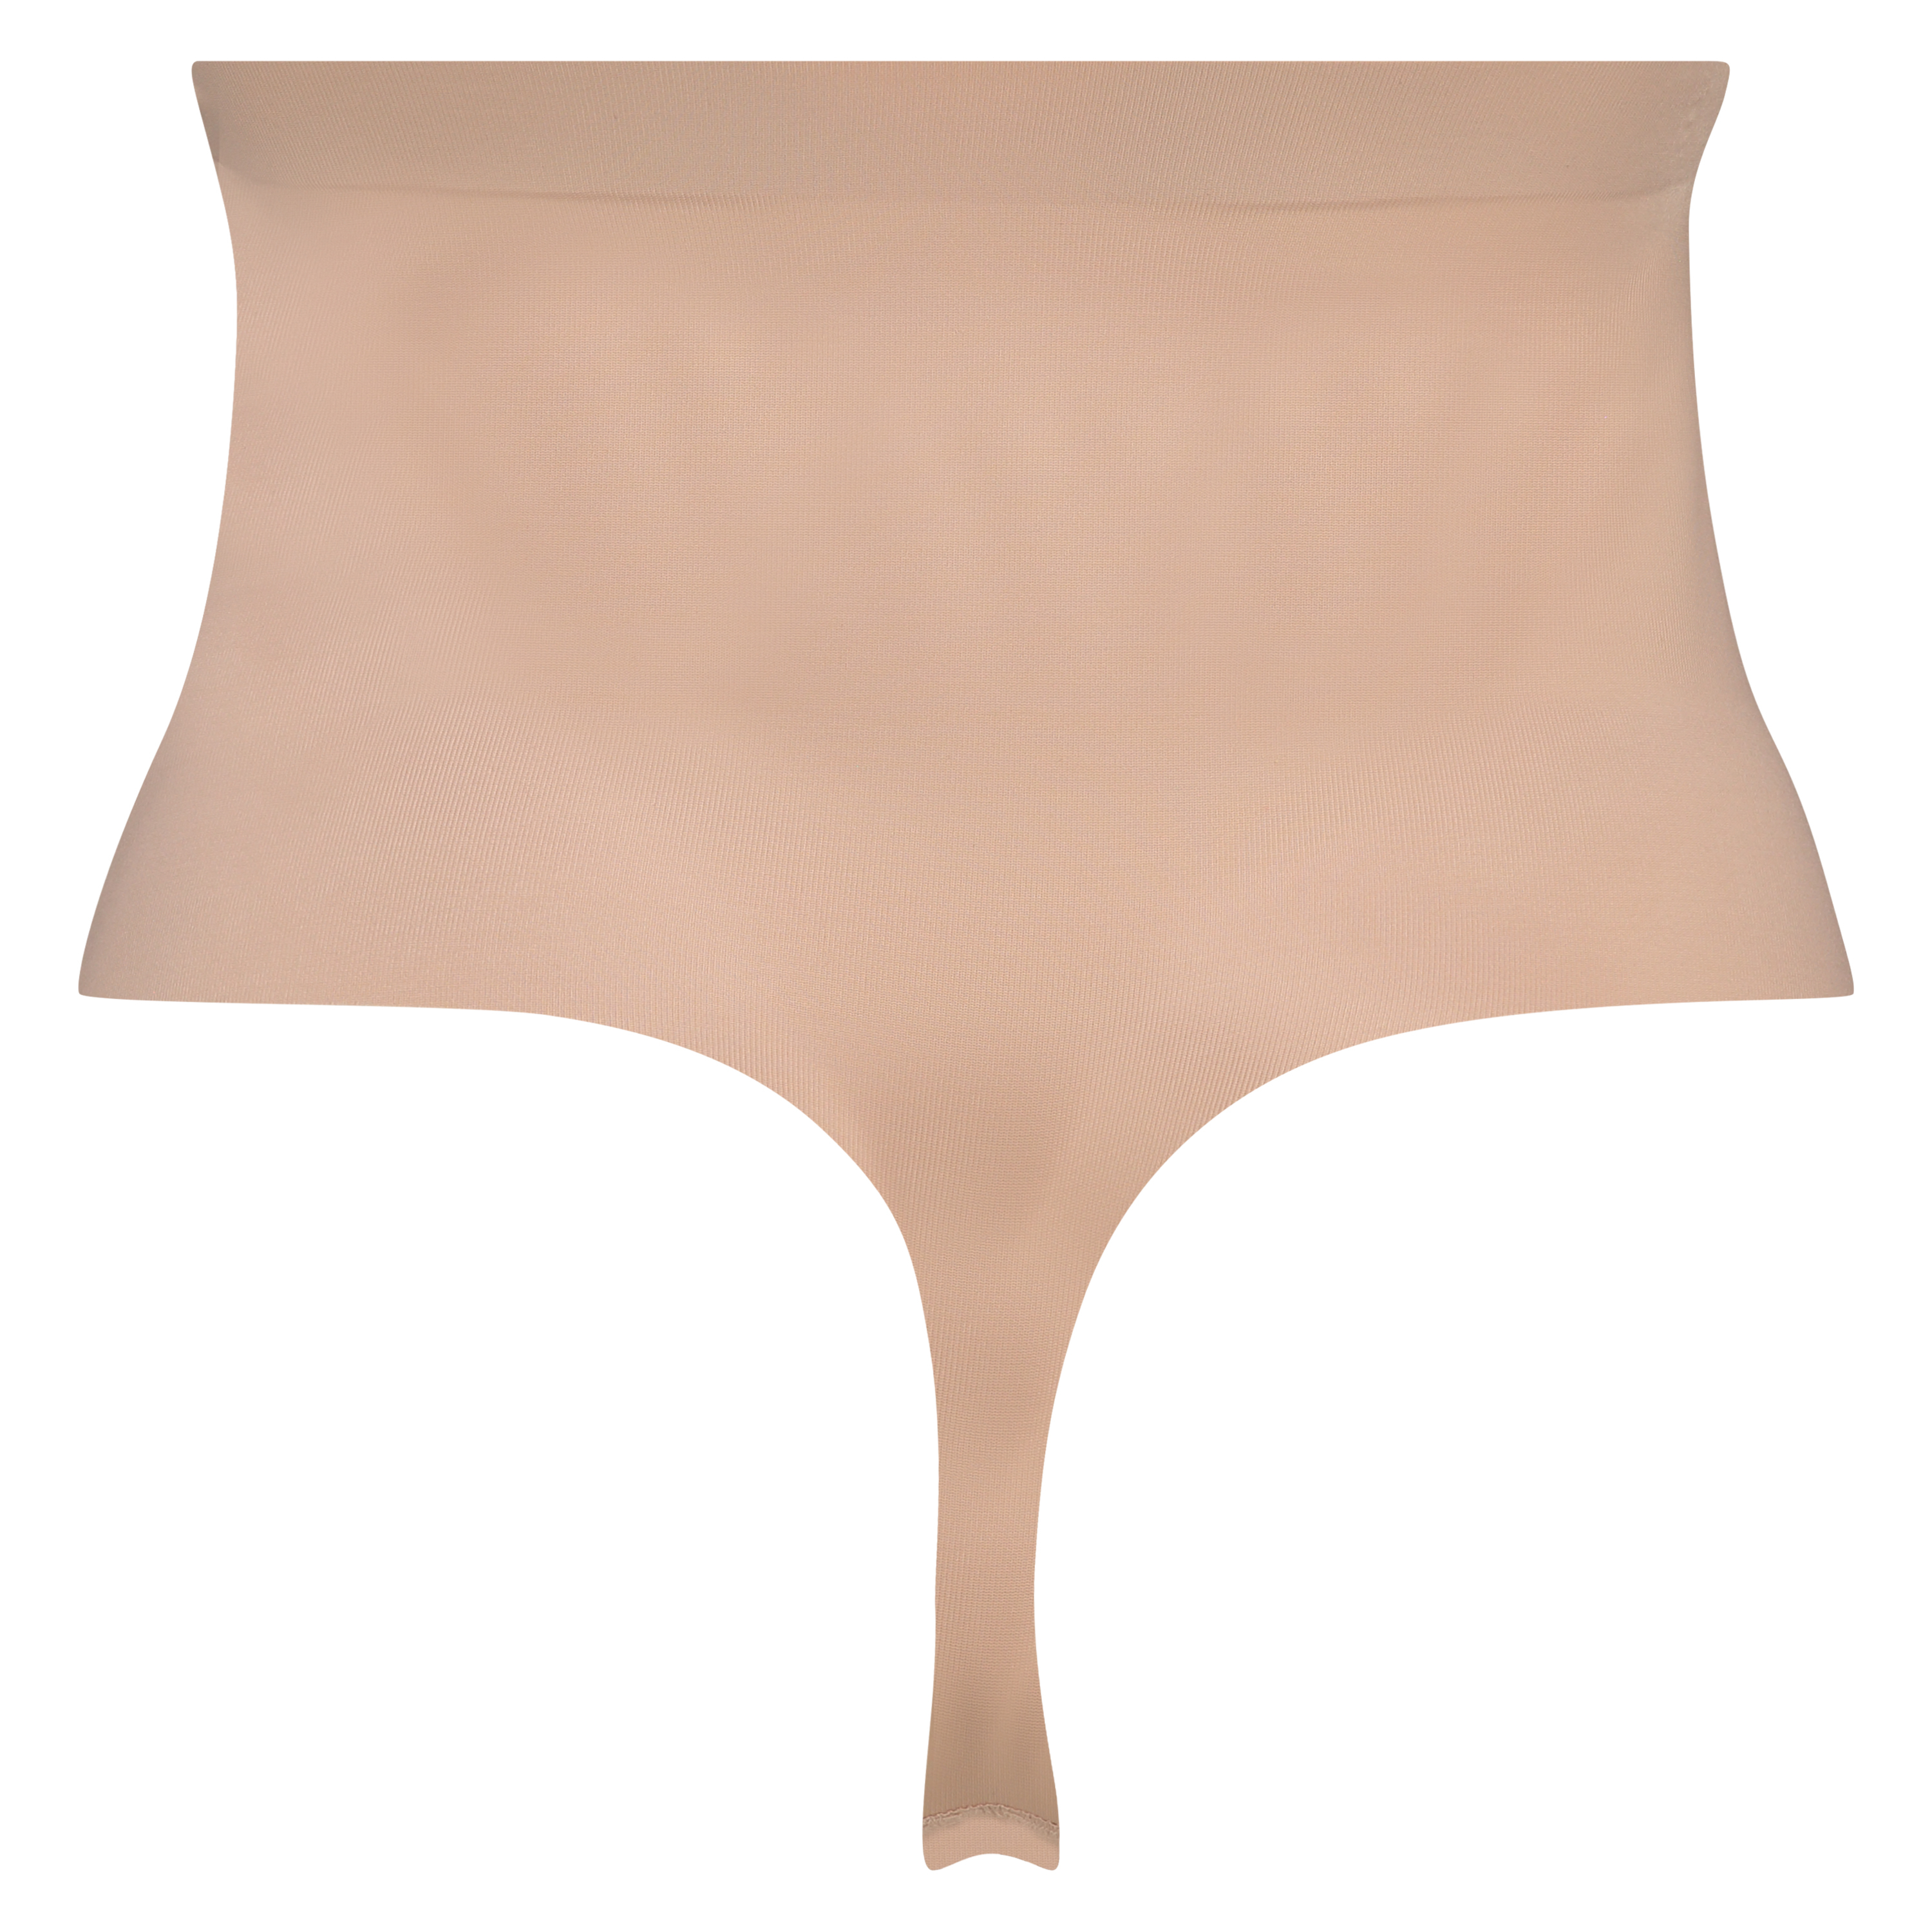 Formender Scuba-Tanga mit hoher Taille - Level 3, Beige, main